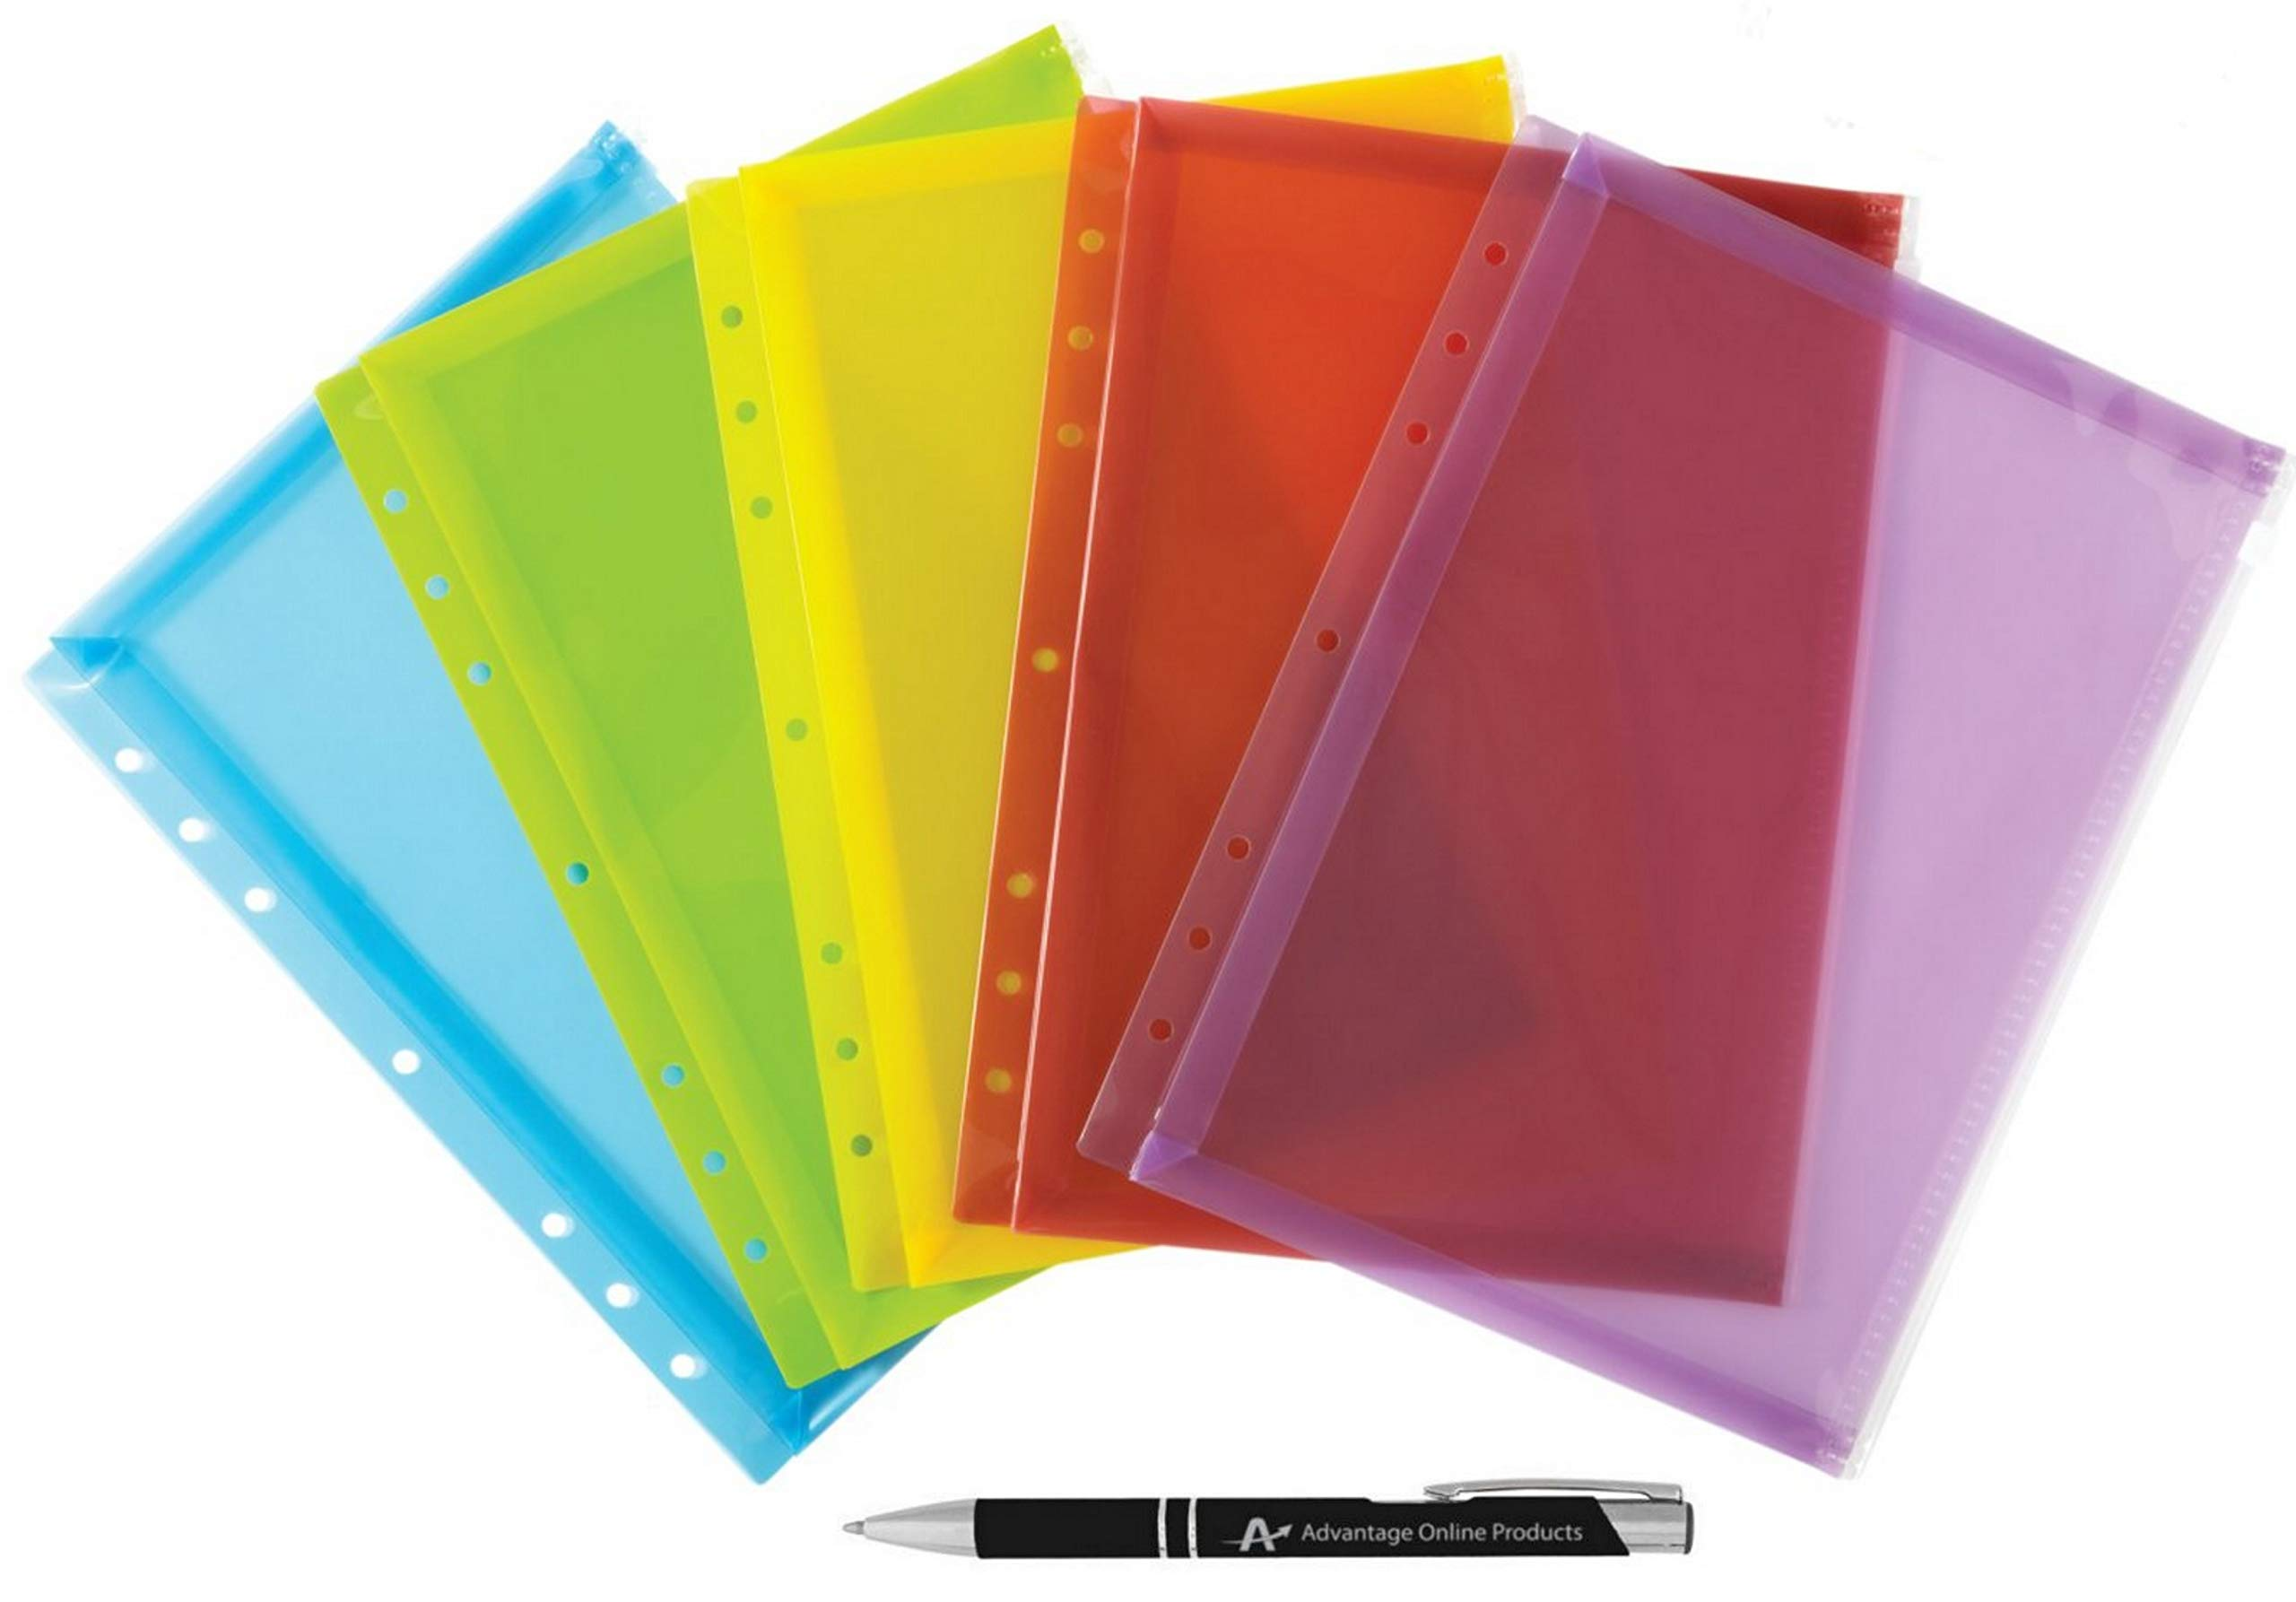 6 Pack Wilson Jones Zipper Binder Pocket / Pouches for 3 Ring Binders, Assorted Colors, Includes a Custom AdvantageOP Chrome and Black Retractable Pen (W20269)